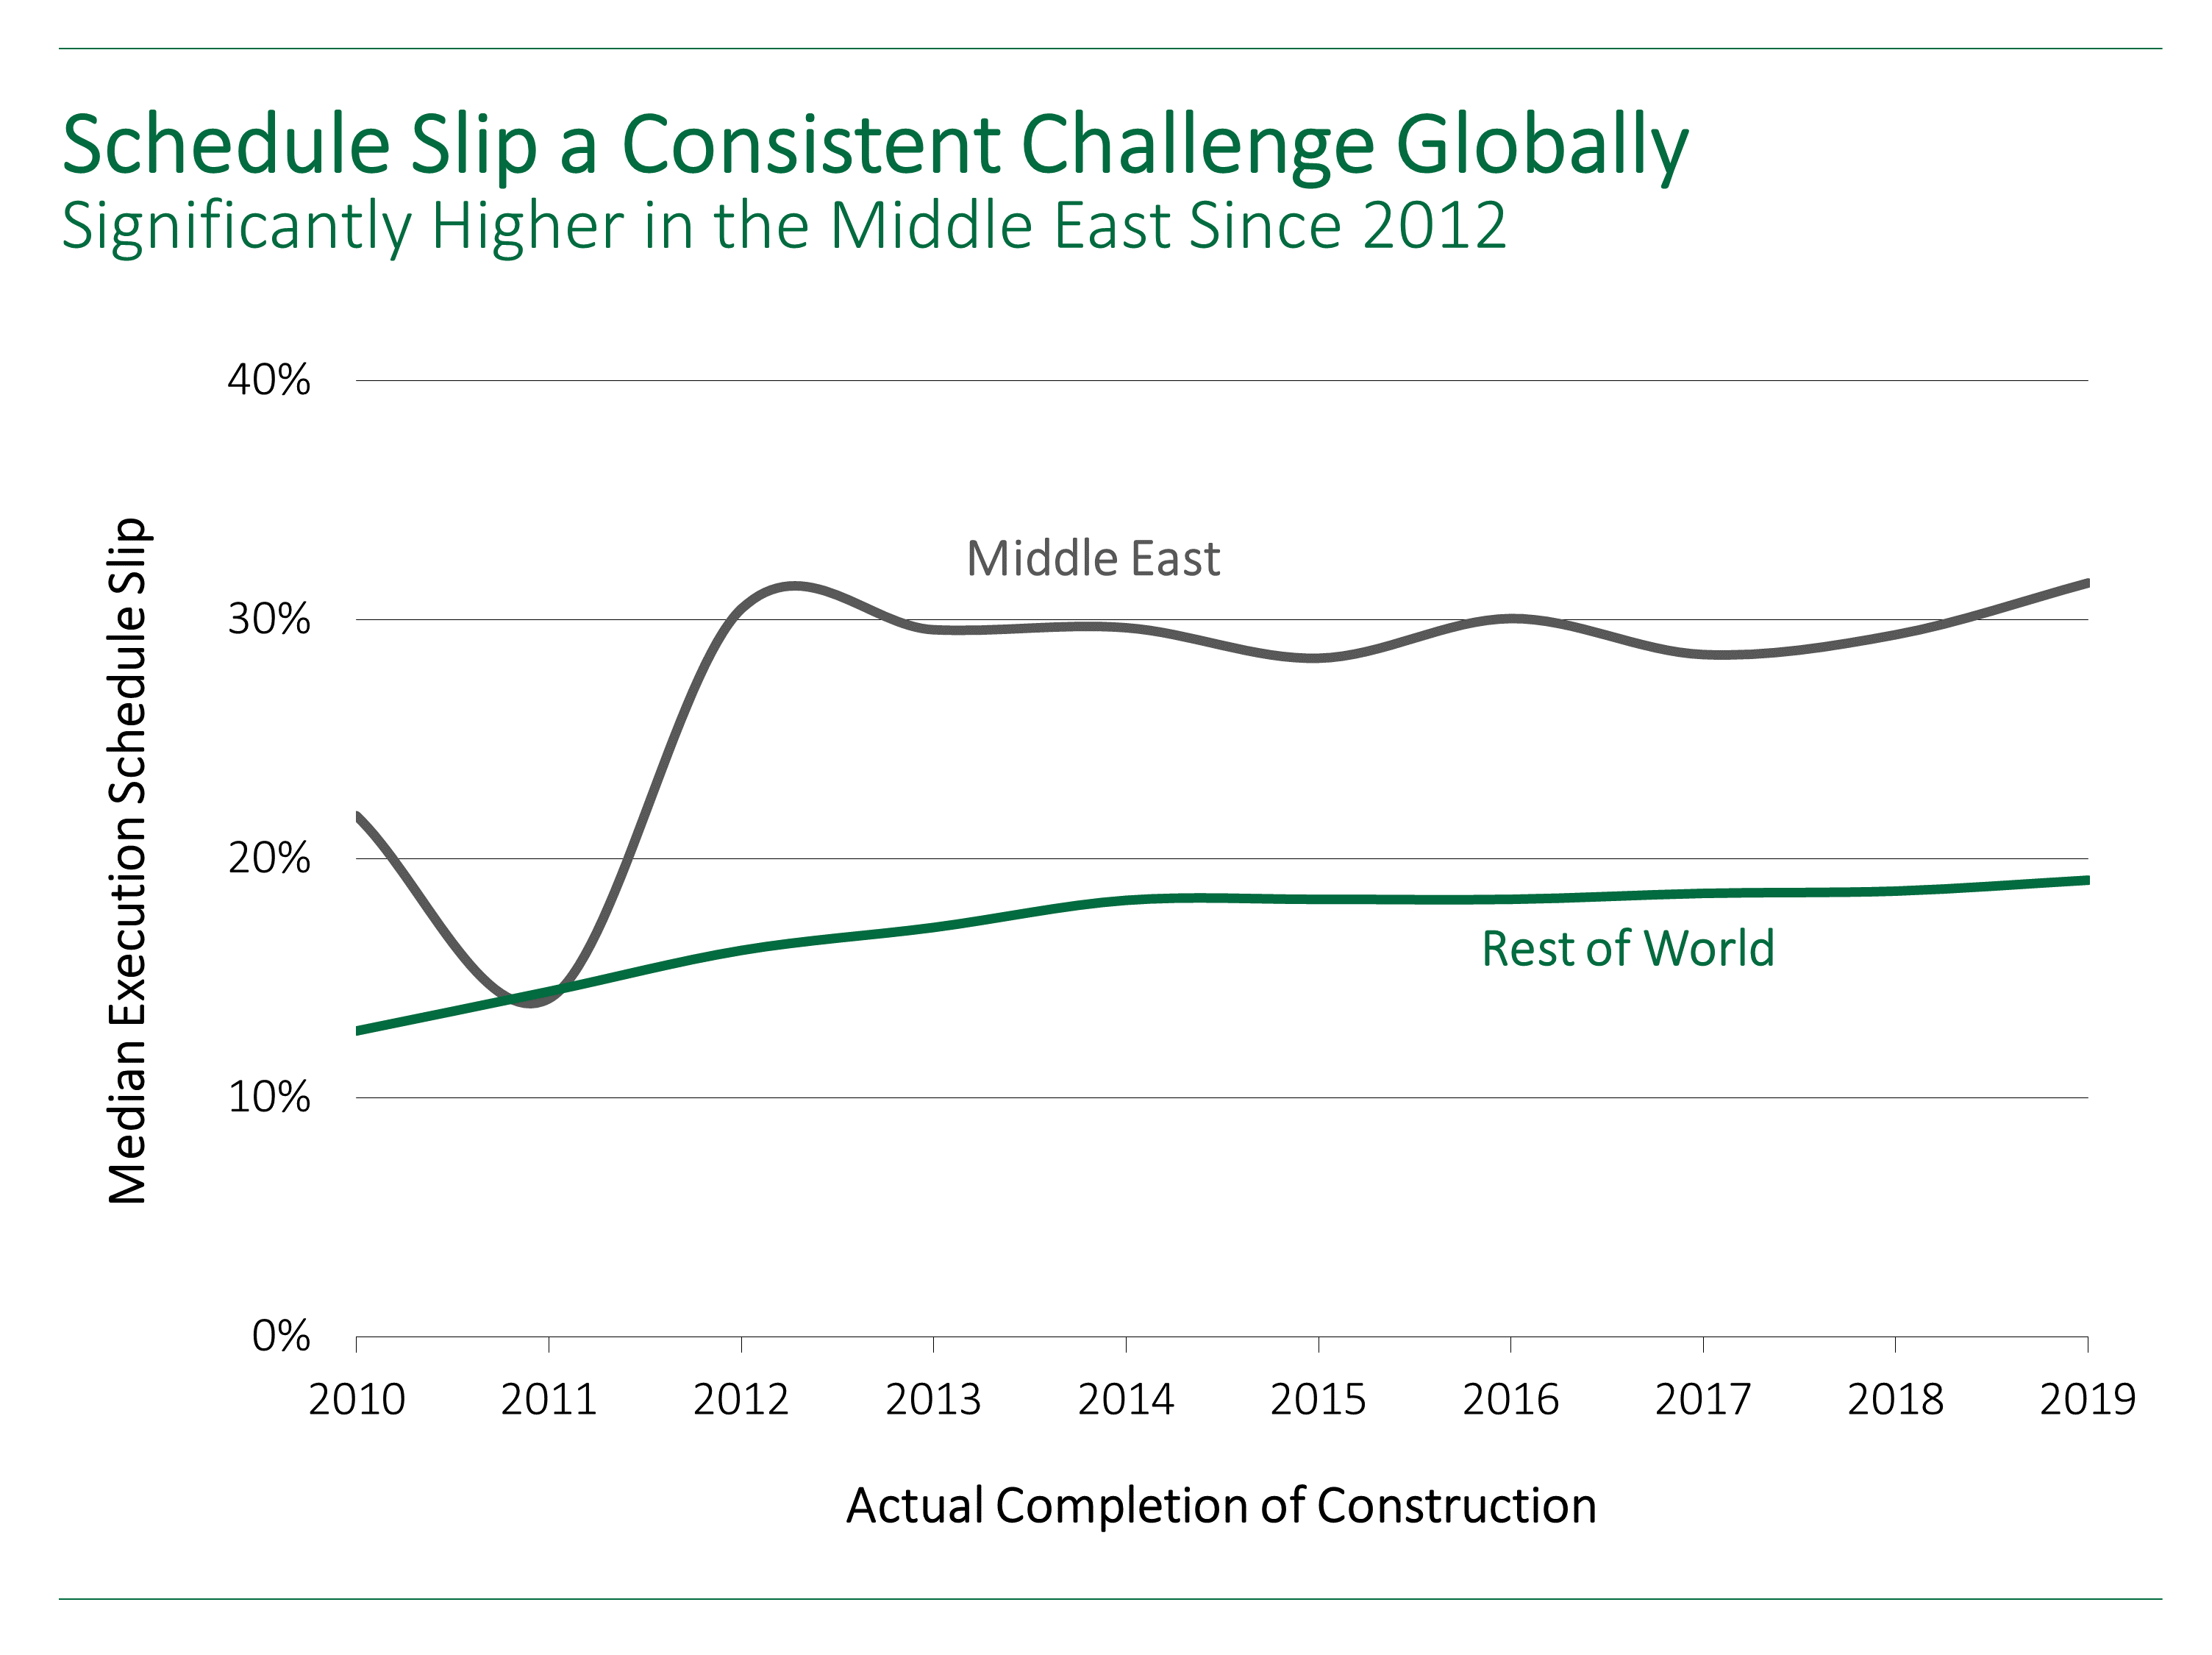 IPA line graph showing how project schedule slip has been significantly higher than the rest of the world since 2012.